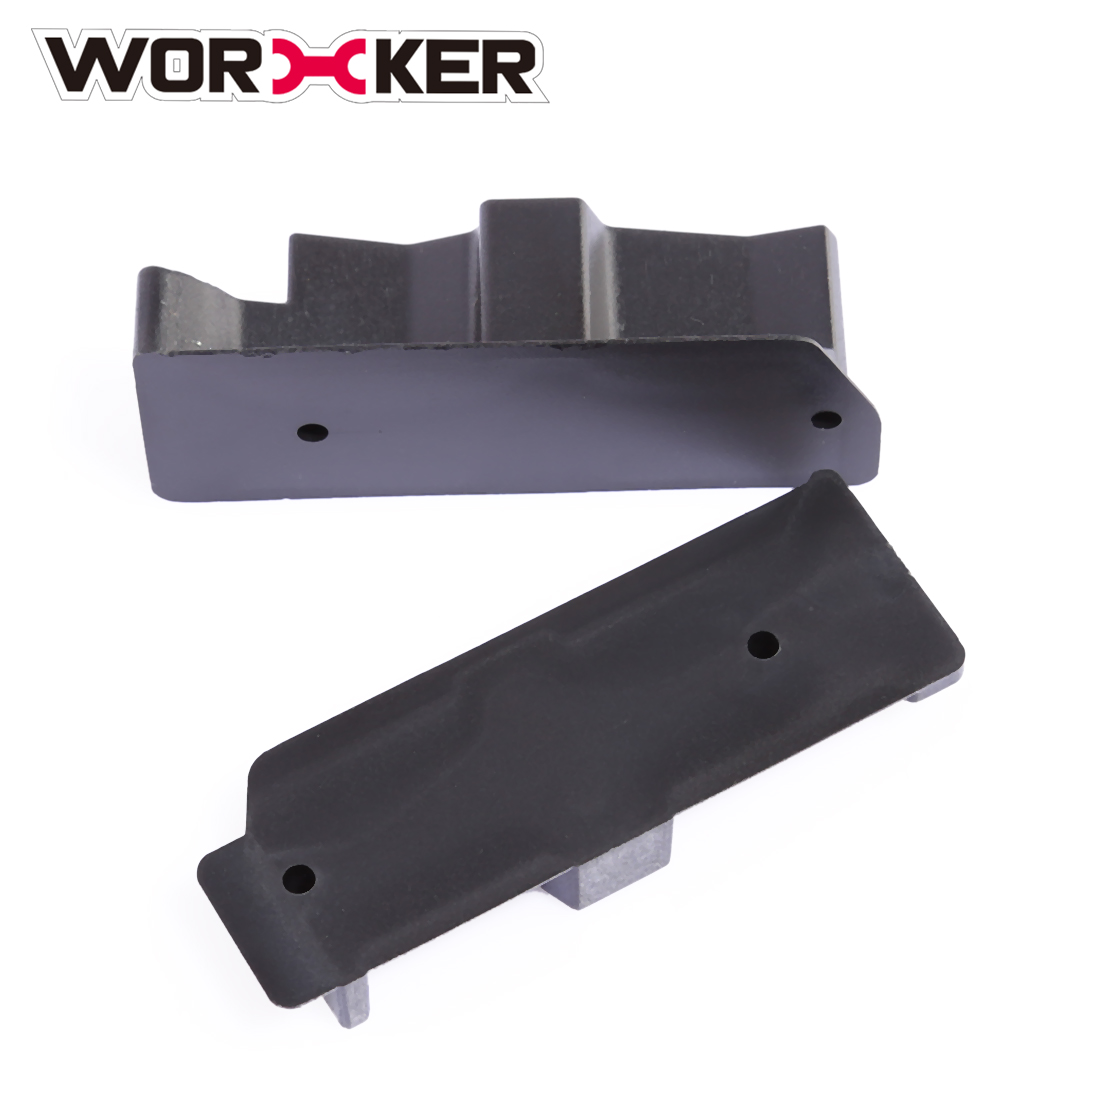 Worker Modified  Side Rail Adapter Picatinny Base Toy Accessories  For Nerf Stryfe Professional Toy Gun Accessories - Black